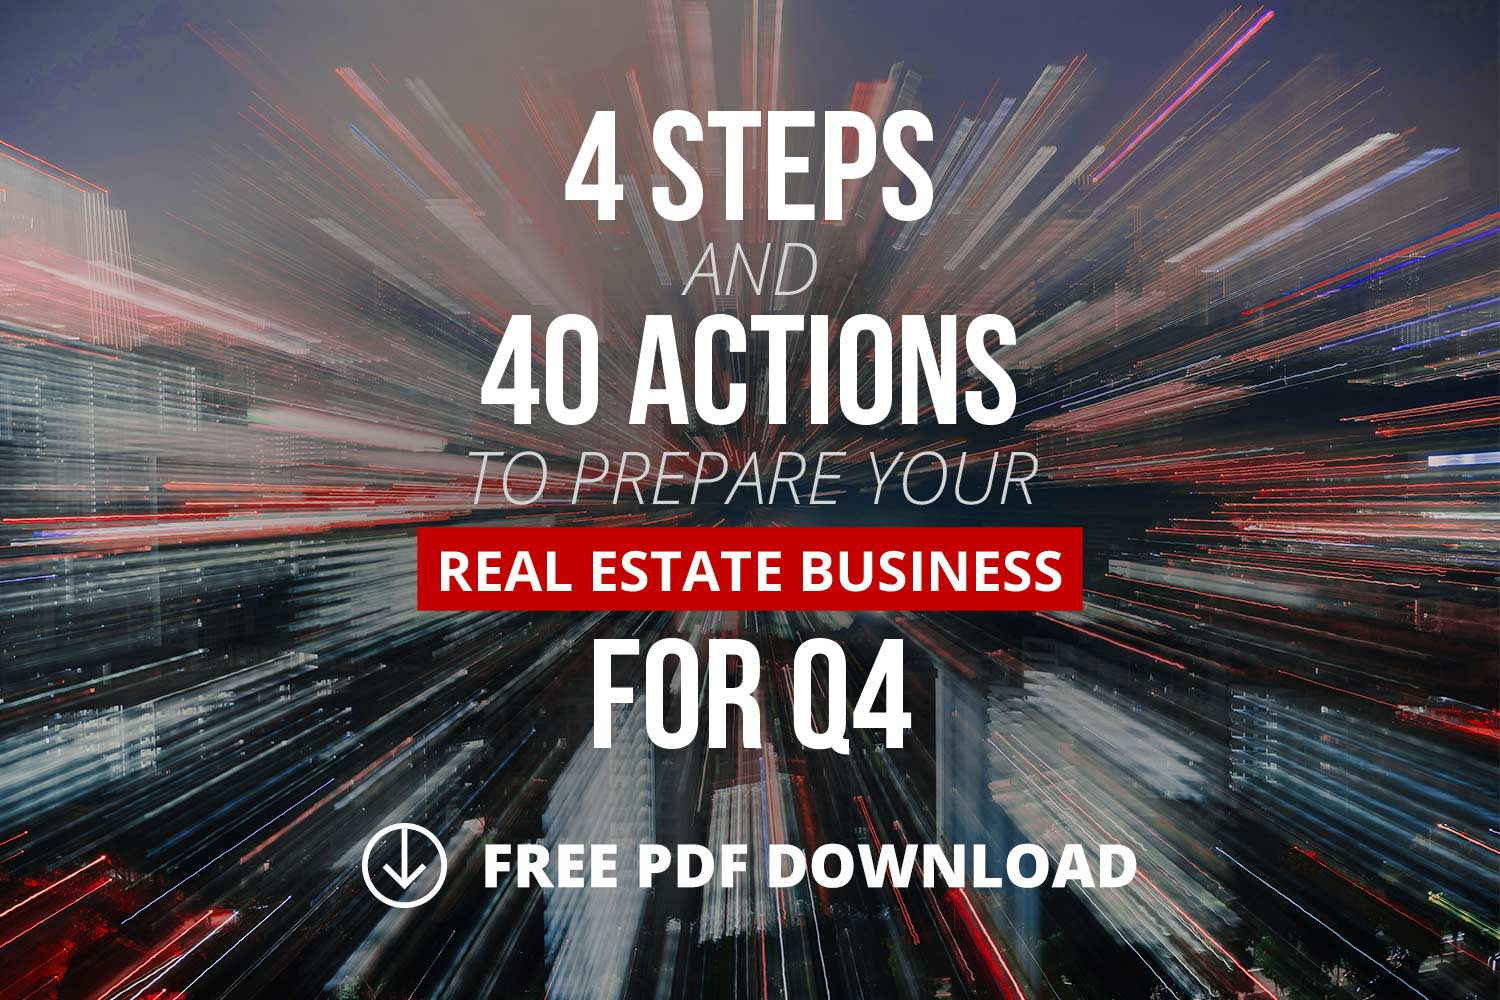 4 Steps And 40 Actions For Q4